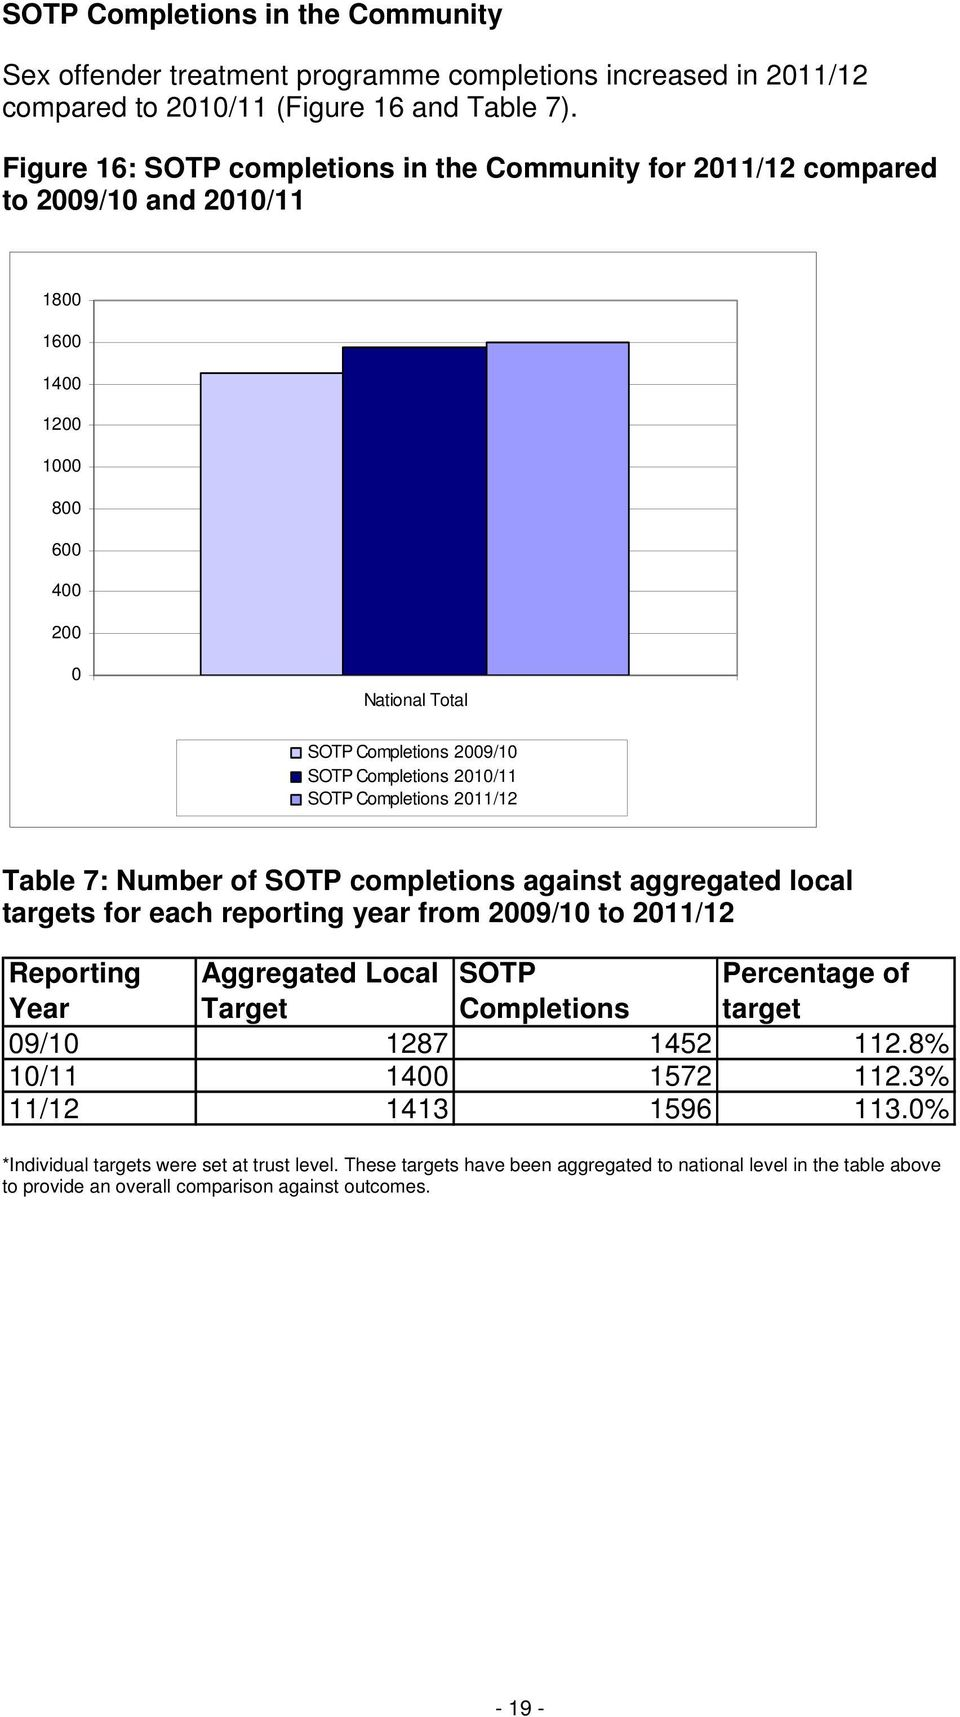 SOTP Completions 2011/12 Table 7: Number of SOTP completions against aggregated local targets for each reporting year from 2009/10 to 2011/12 Reporting Aggregated Local SOTP Percentage of Year Target